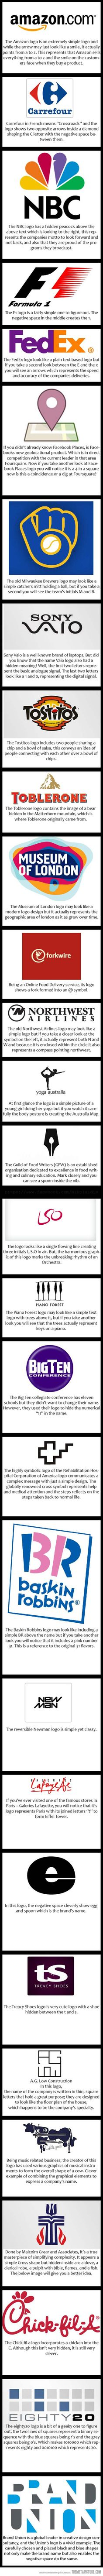 Smart Logos With Hidden Messages… amazing.